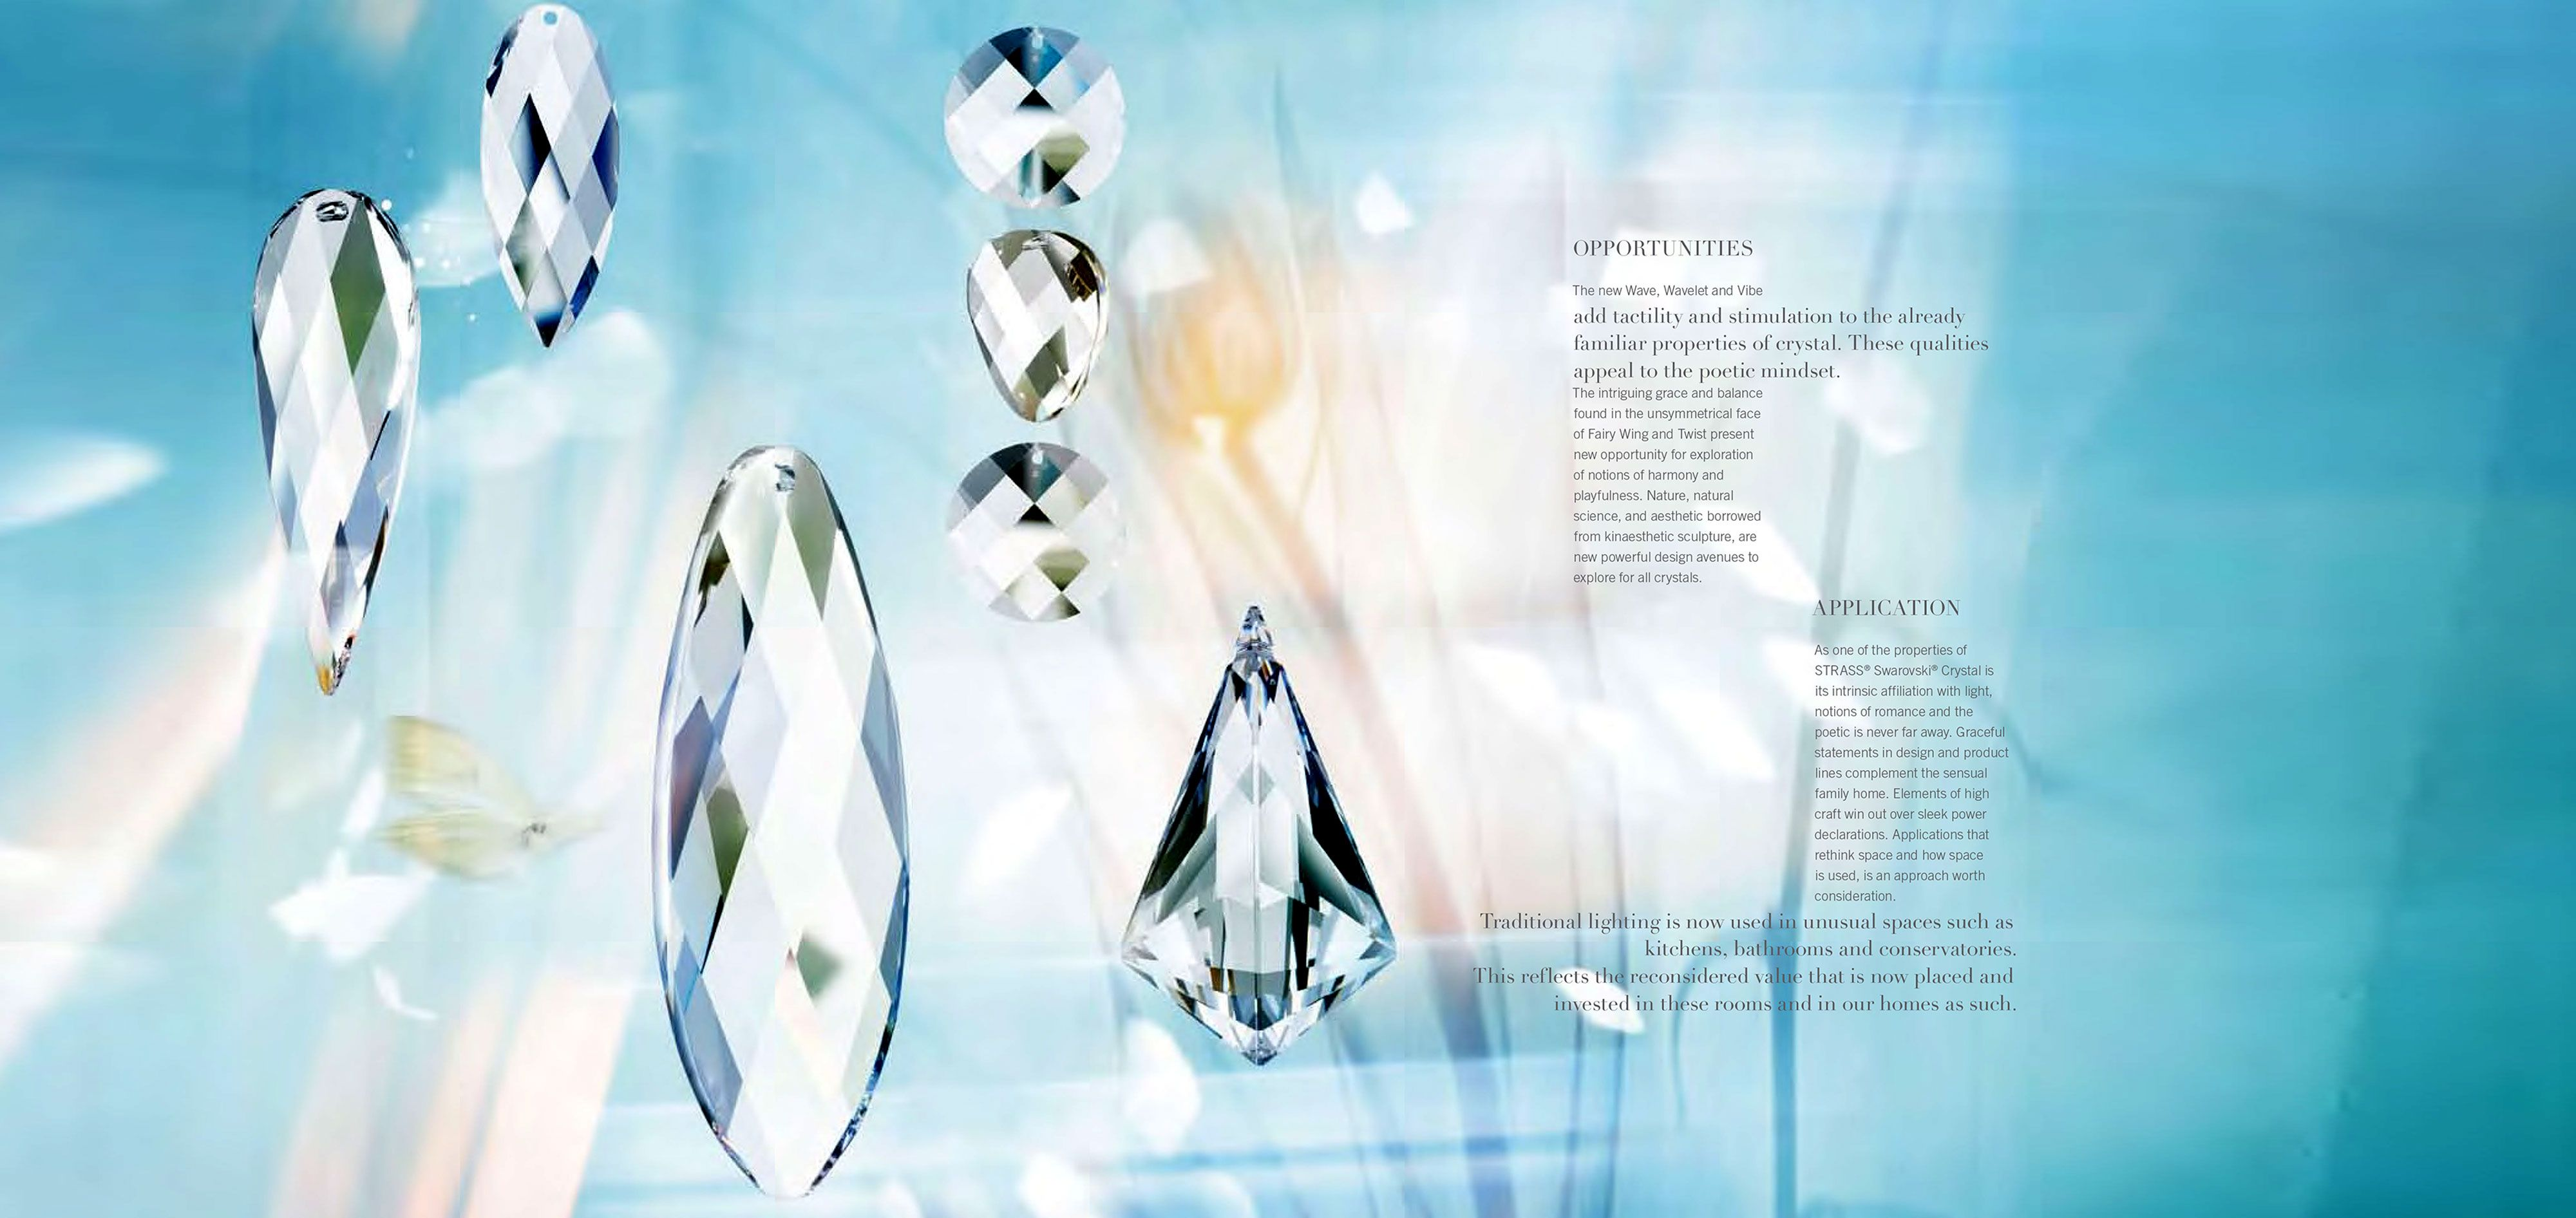 3.-Kjaer-Global-Swarovski--Product-Launch-Catalogue